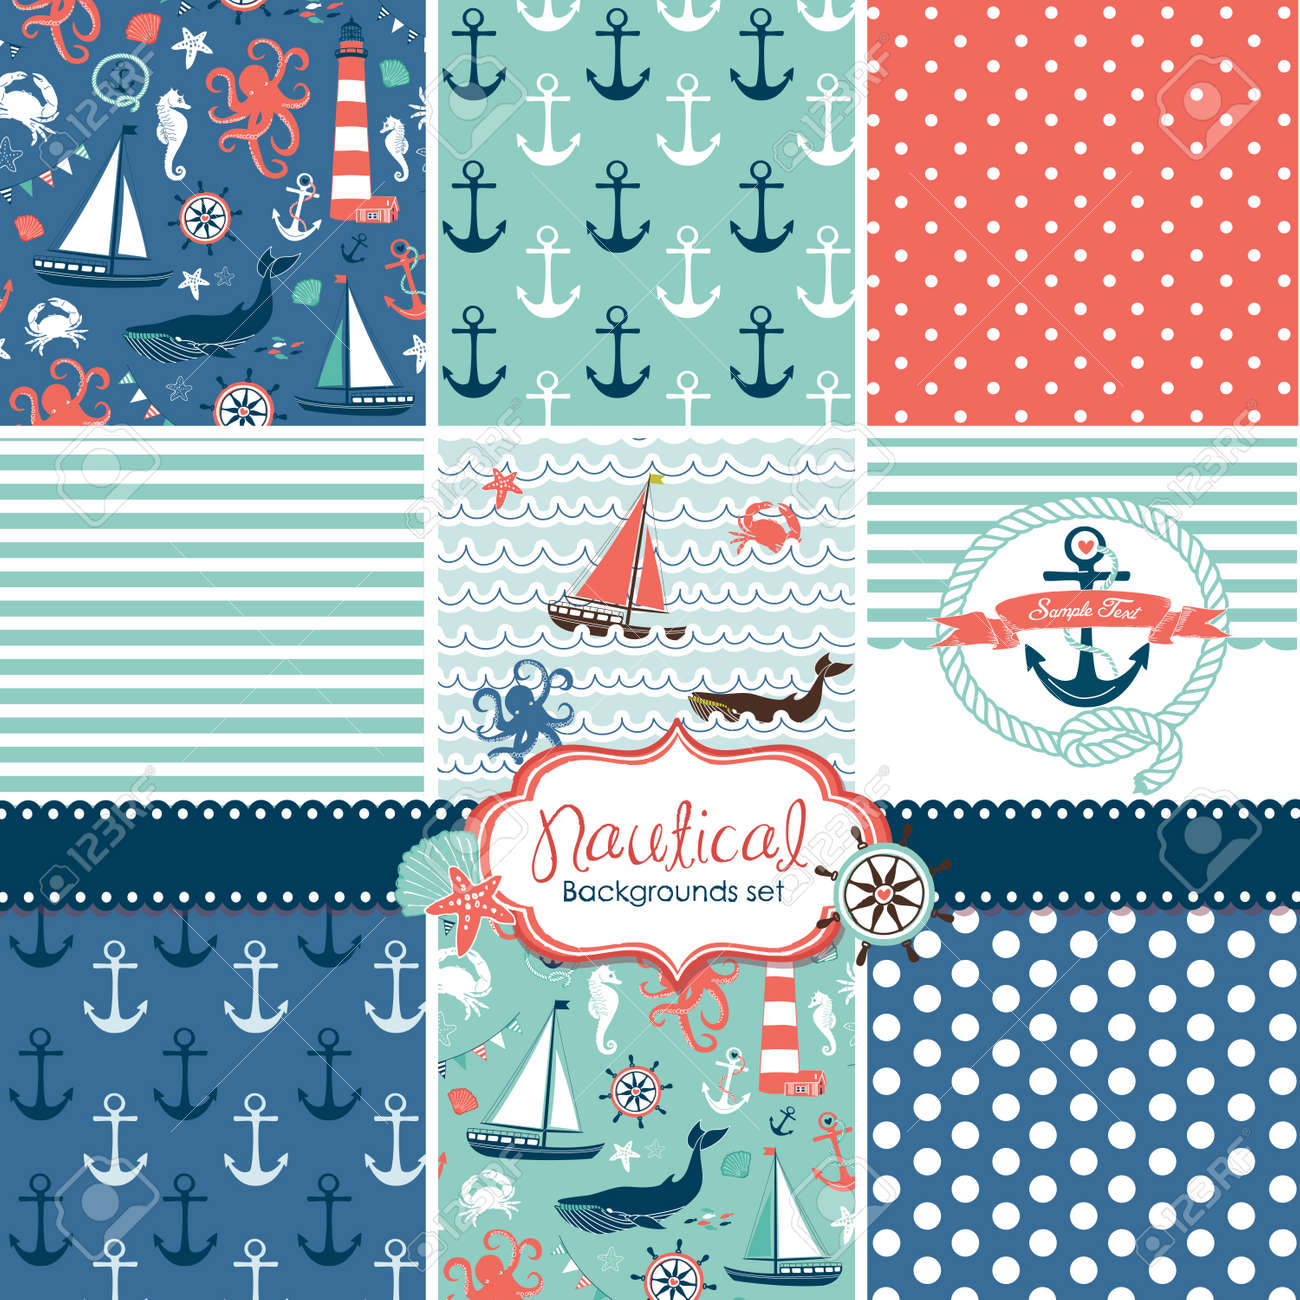 A set of 9 nautical backgrounds, blue, red and white seamless patterns - 20468433